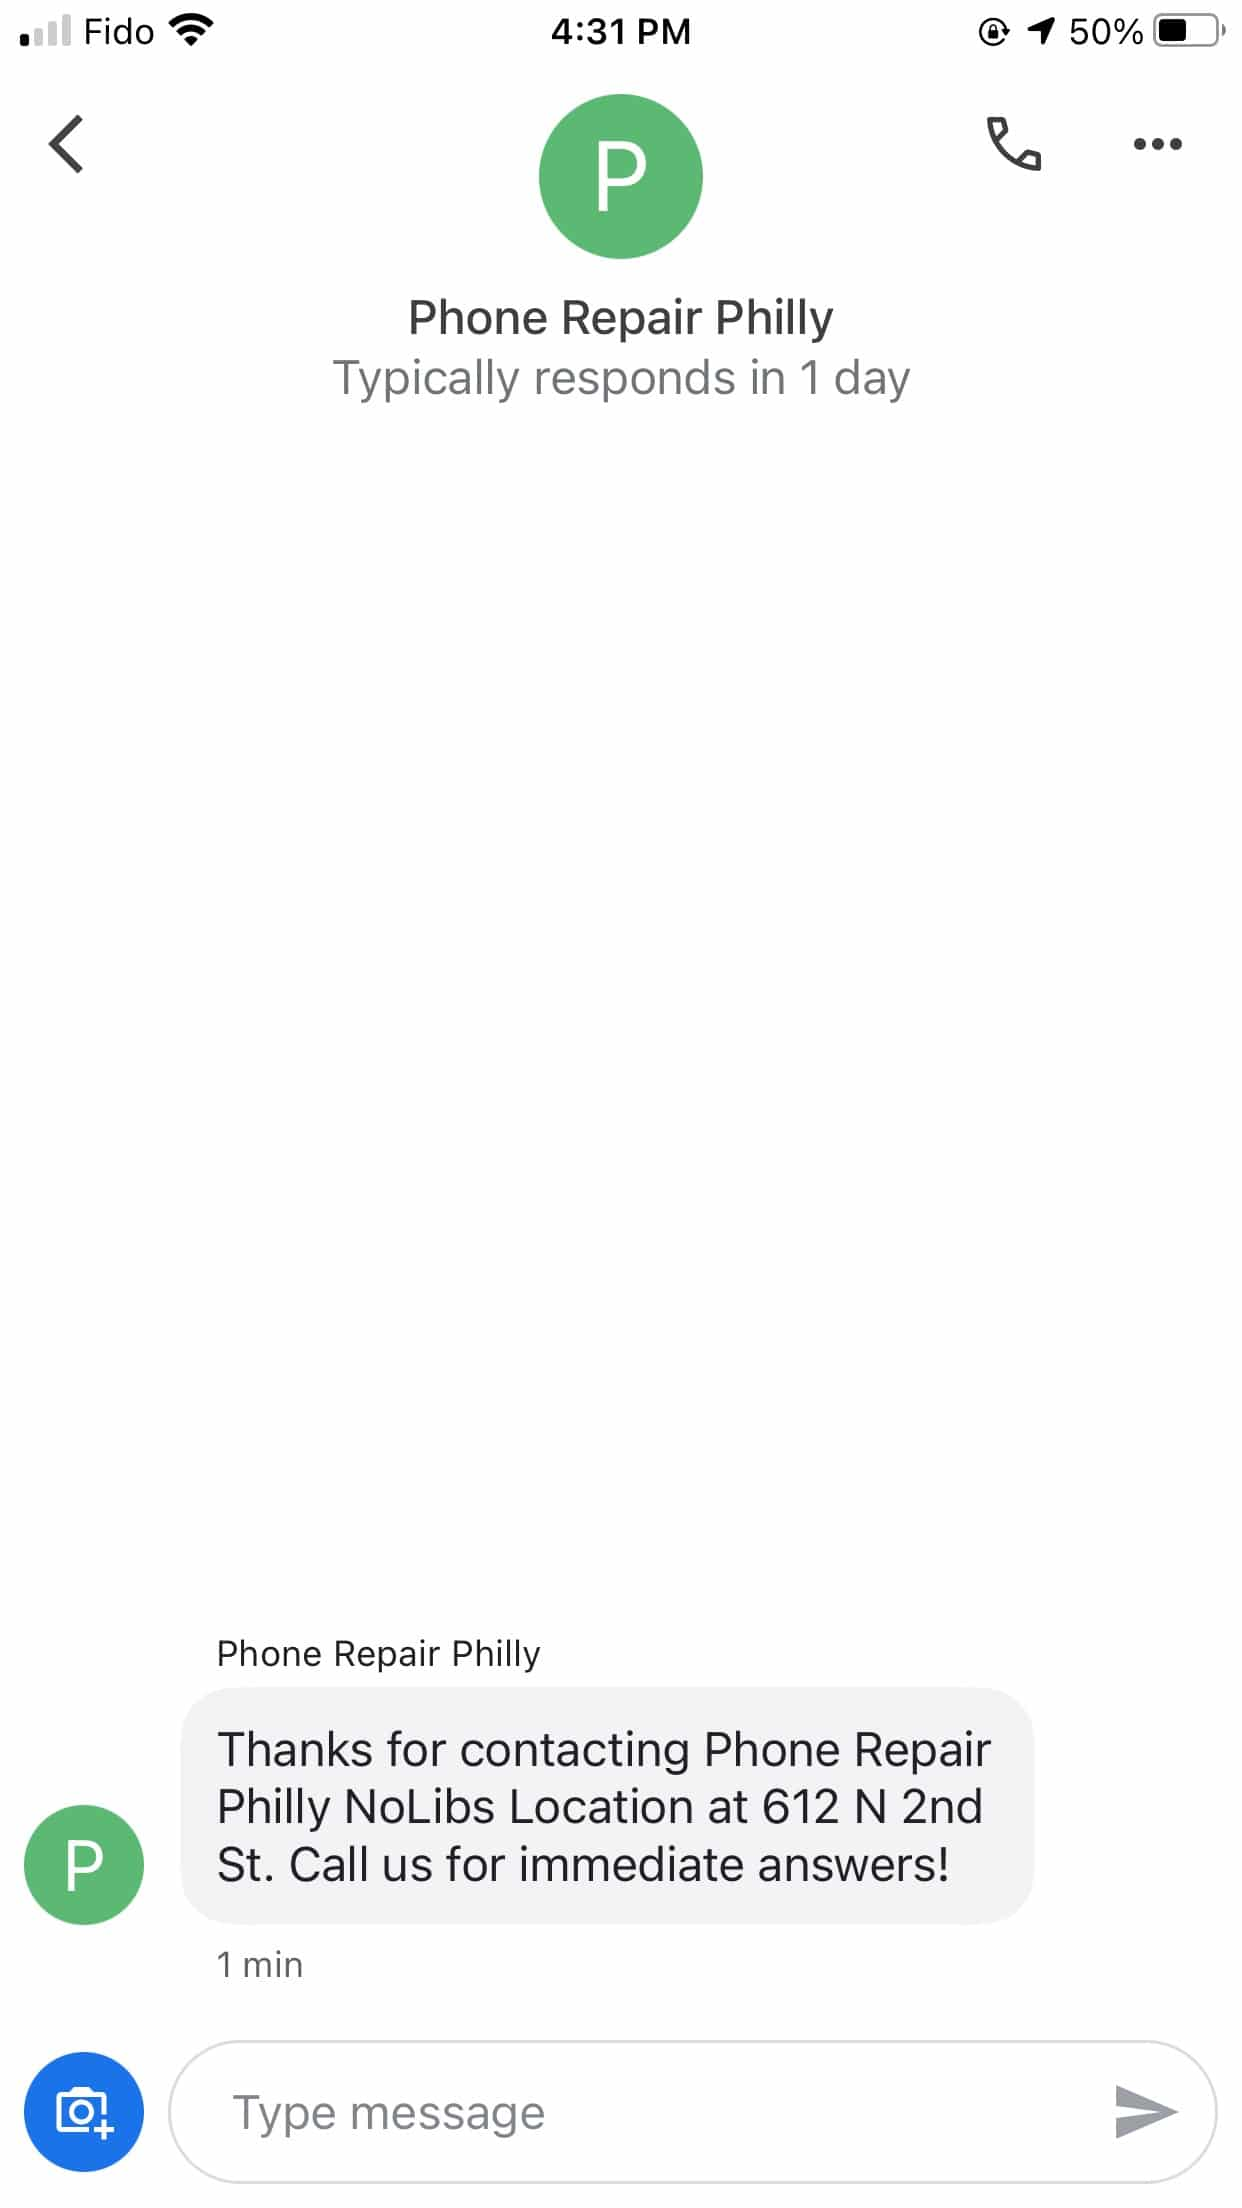 Phone Repair Philly welcome message